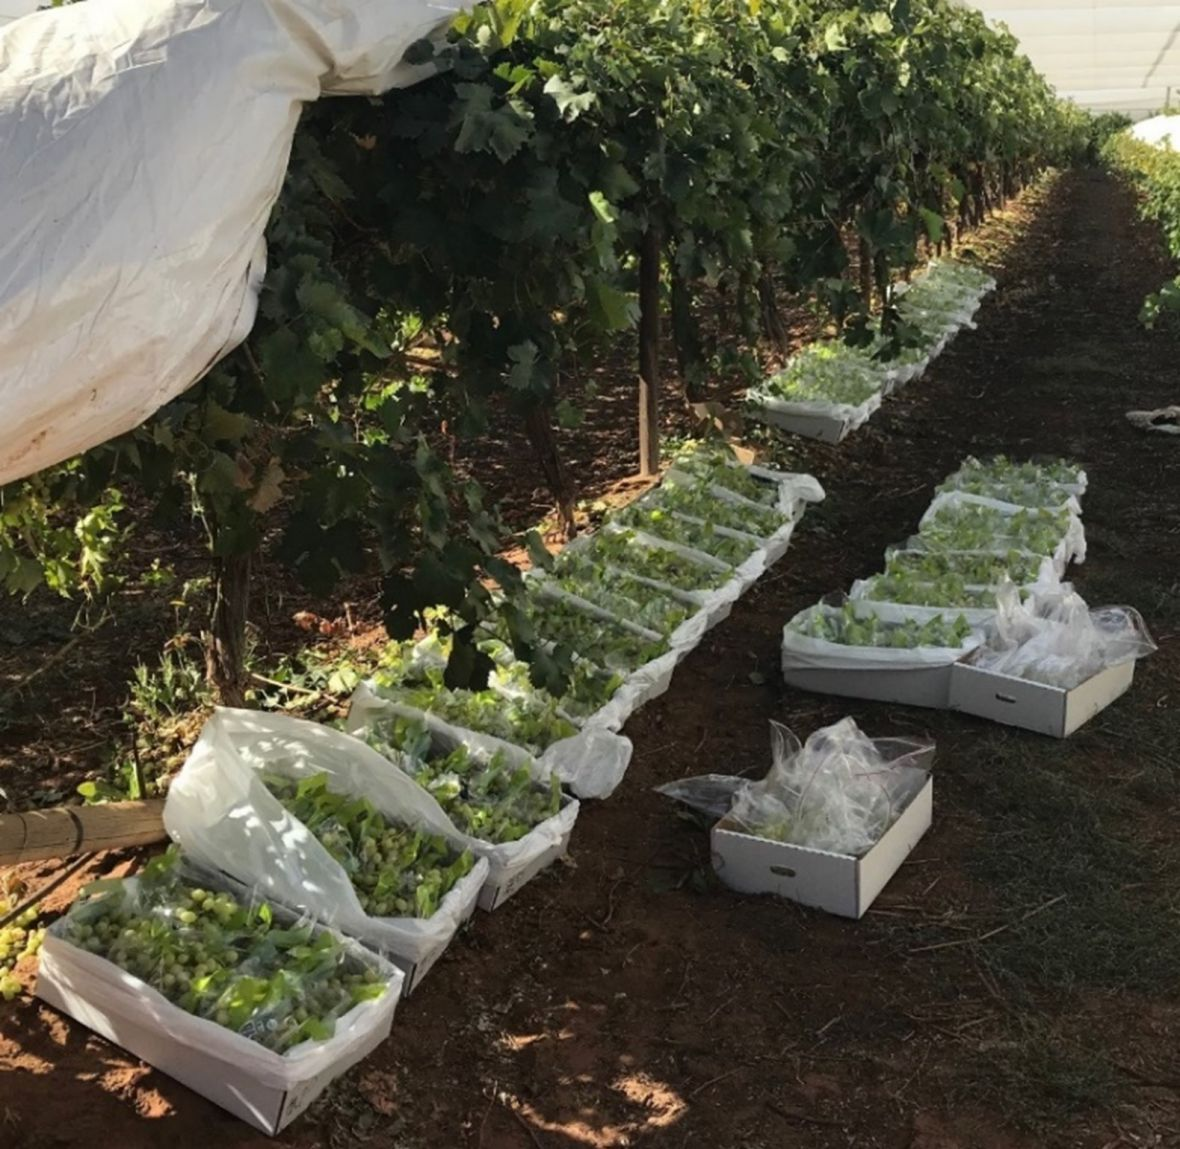 'Luisco' grapes packed into cartons during rot risk prediction and delayed cooling experiment in Mildura during March 2021.